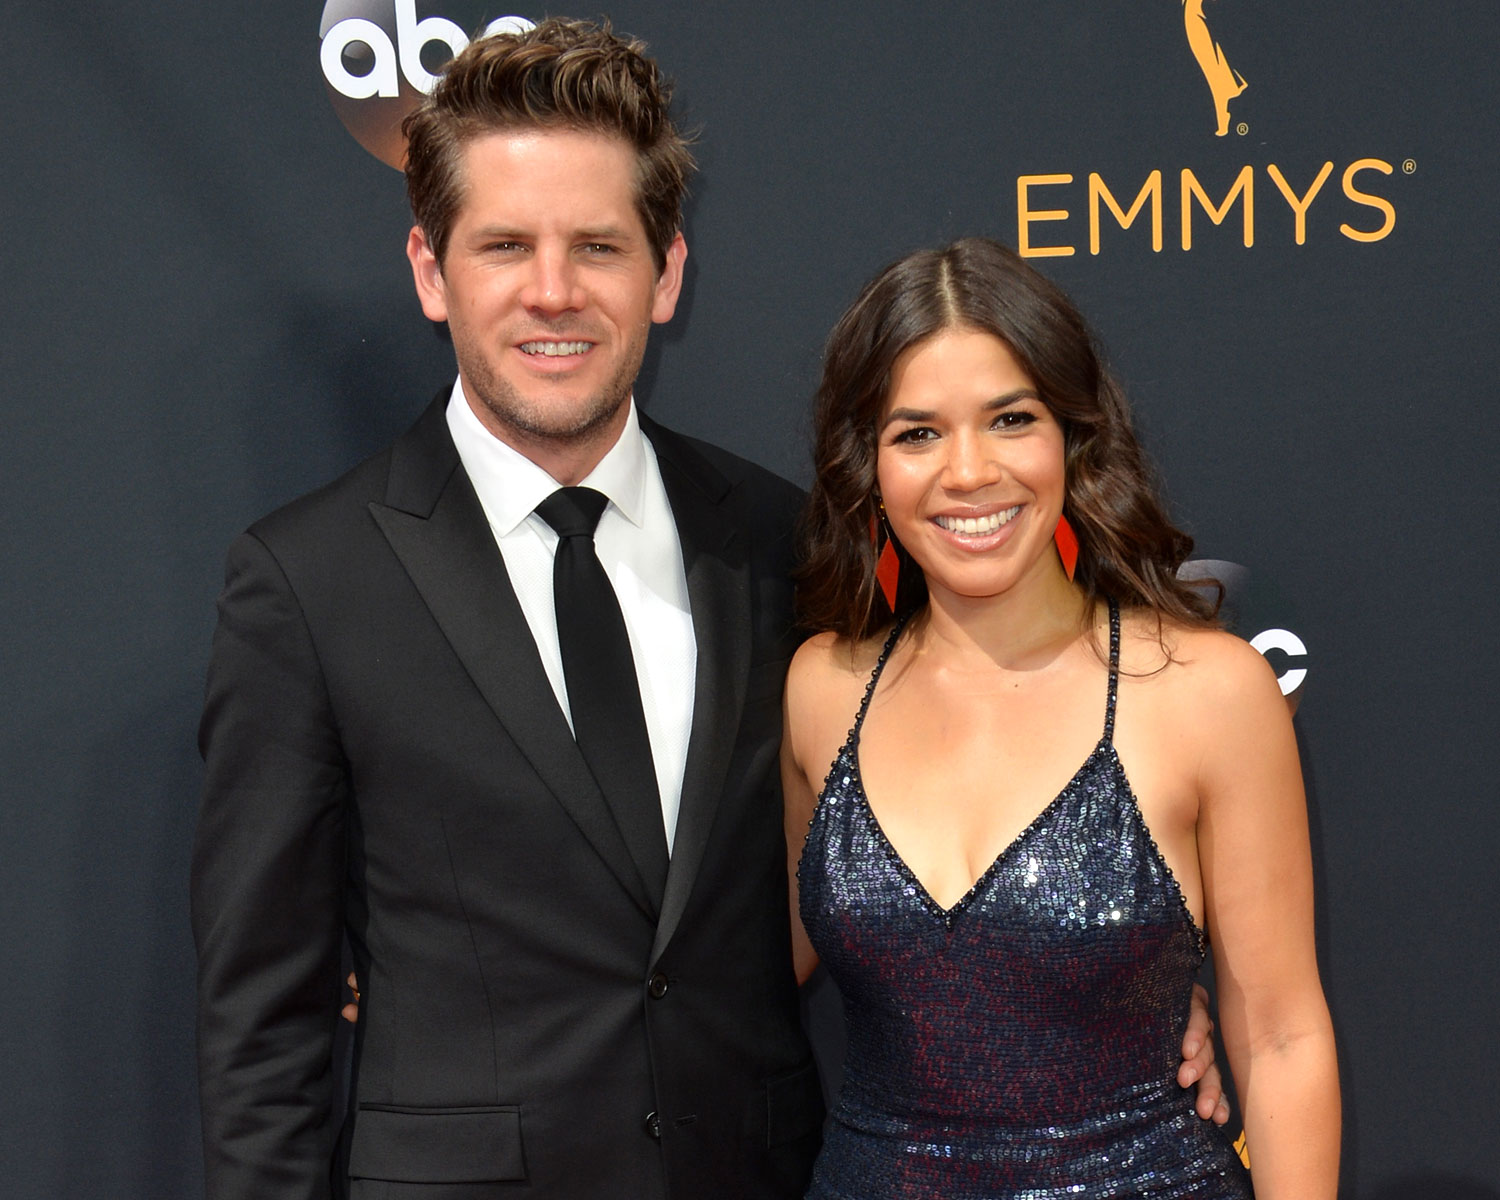 America Ferrera and Ryan Piers at Emmy Awards